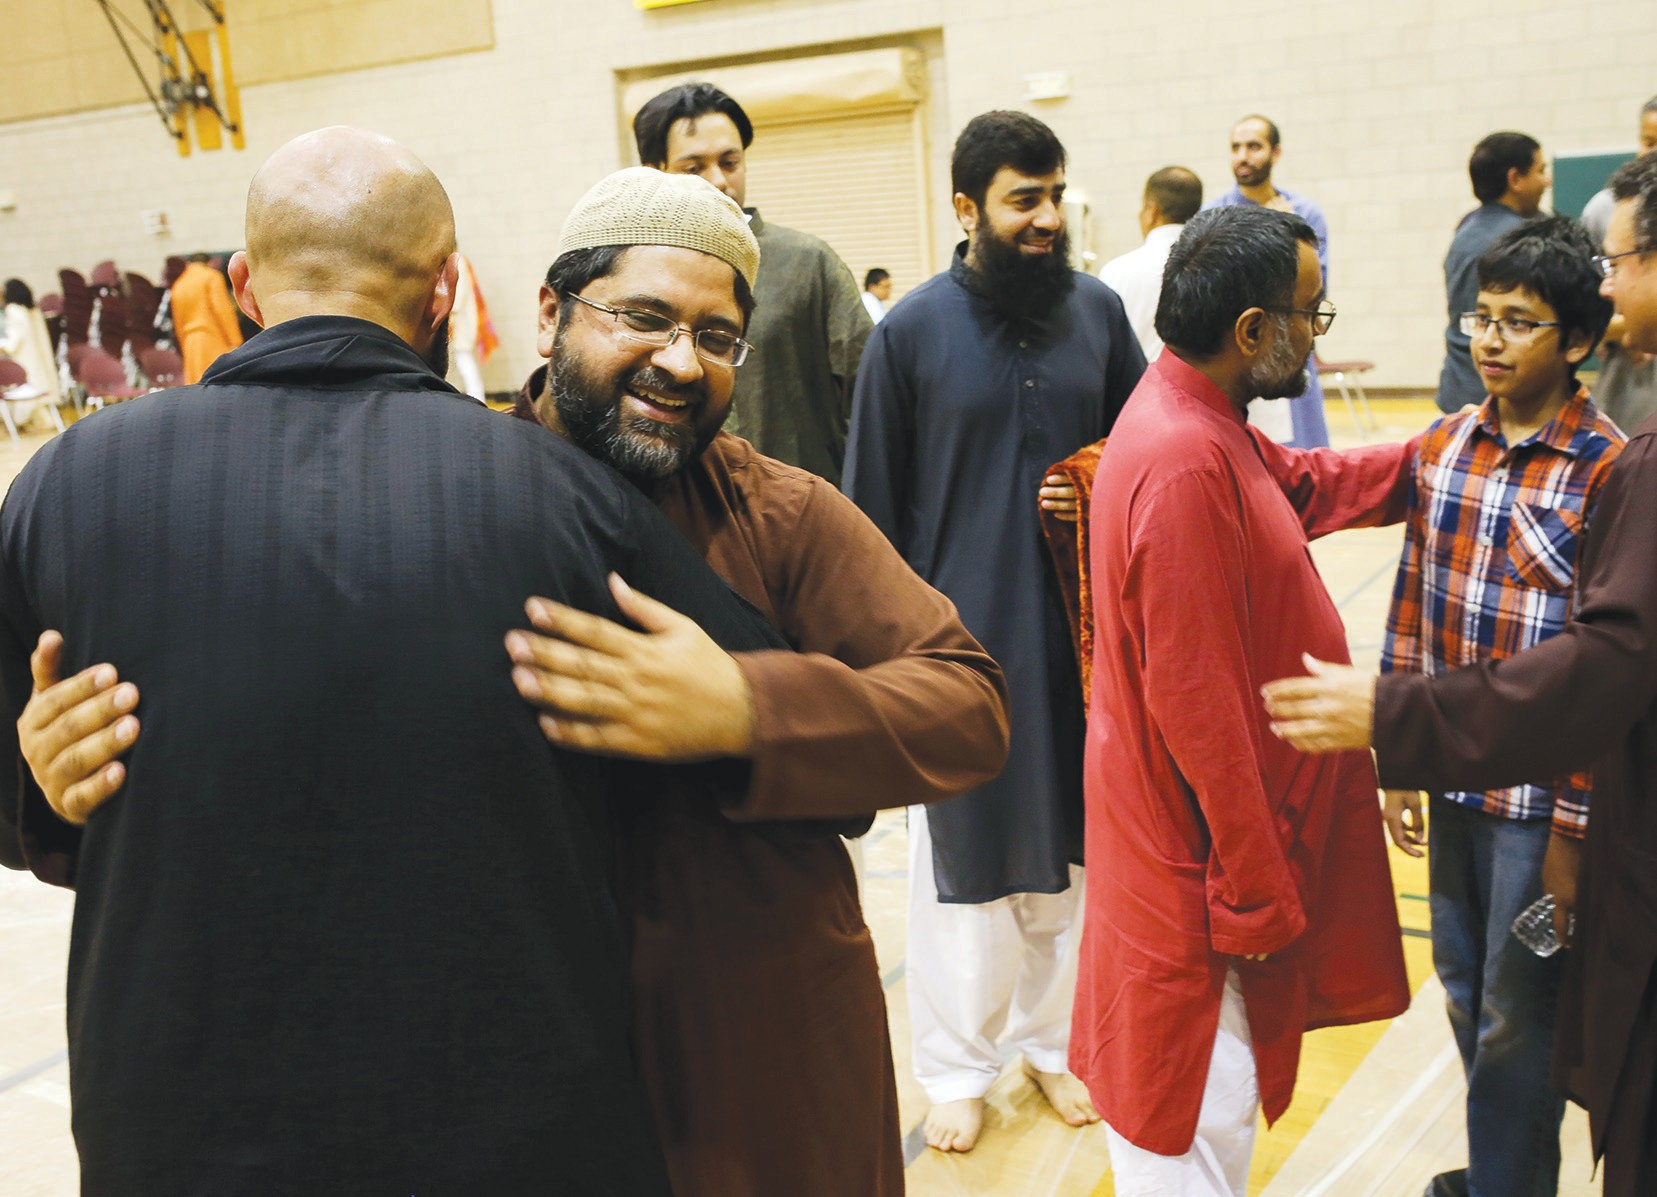 BLESSED CELEBRATION—Shahid Iqbal, right, of Oak Park and Hamza Jilani of Agoura Hills greet one another after prayer during Eid-al-Adha on Sept. 1 at Dos Vientos Community Center in Newbury Park. BOBBY CURTIS/Acorn Newspapers